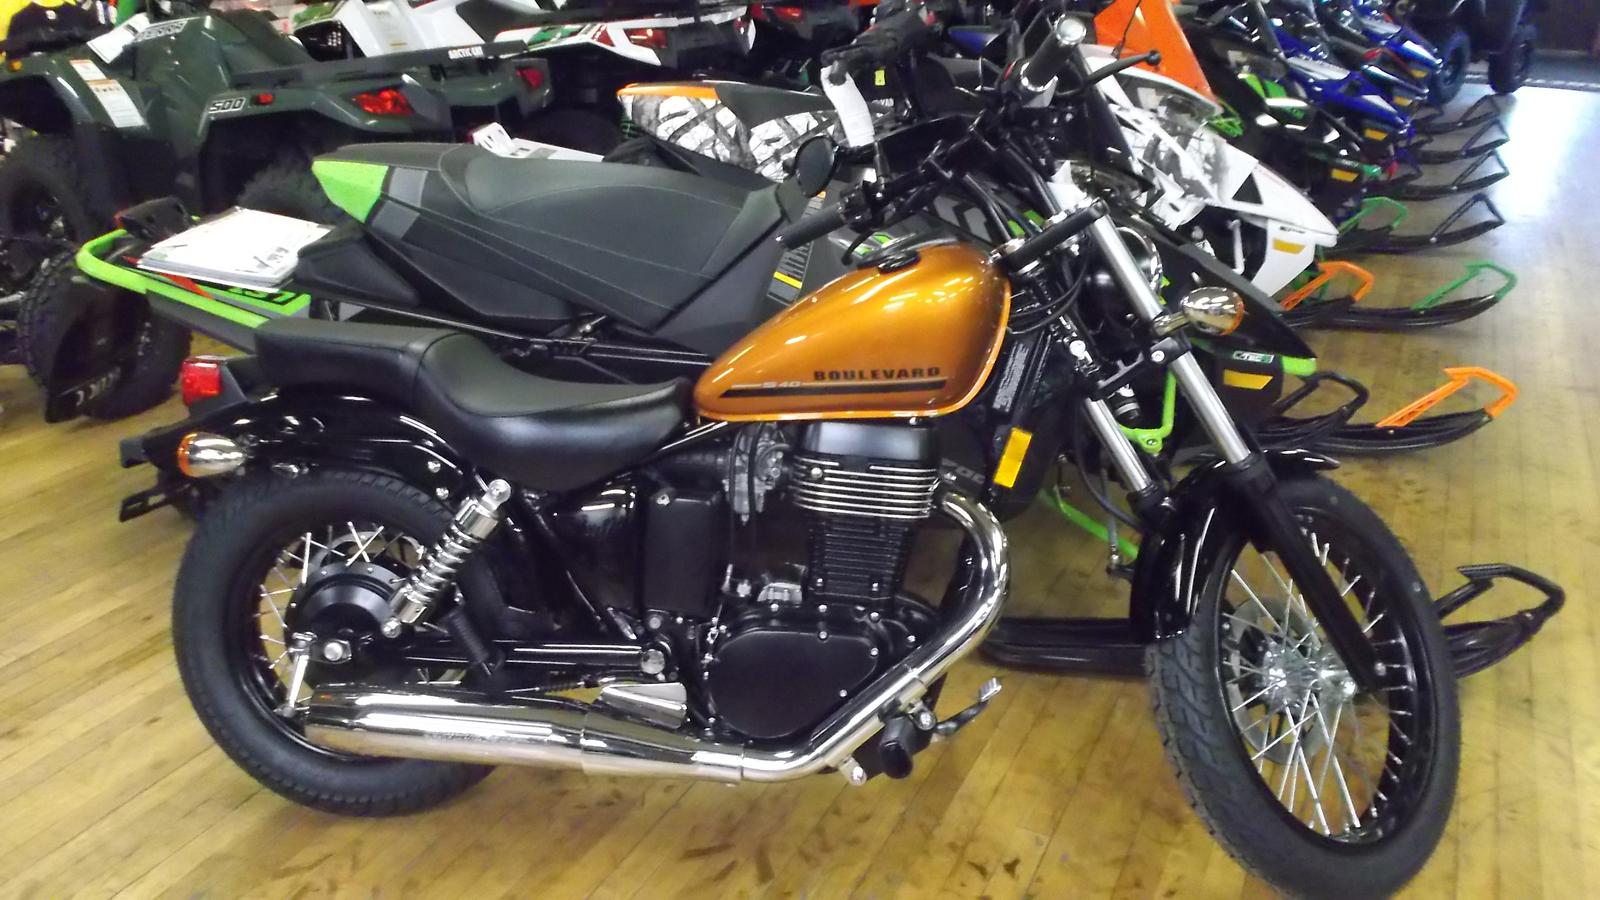 2017 suzuki boulevard s40 for sale in hughesville, pa. ye olde